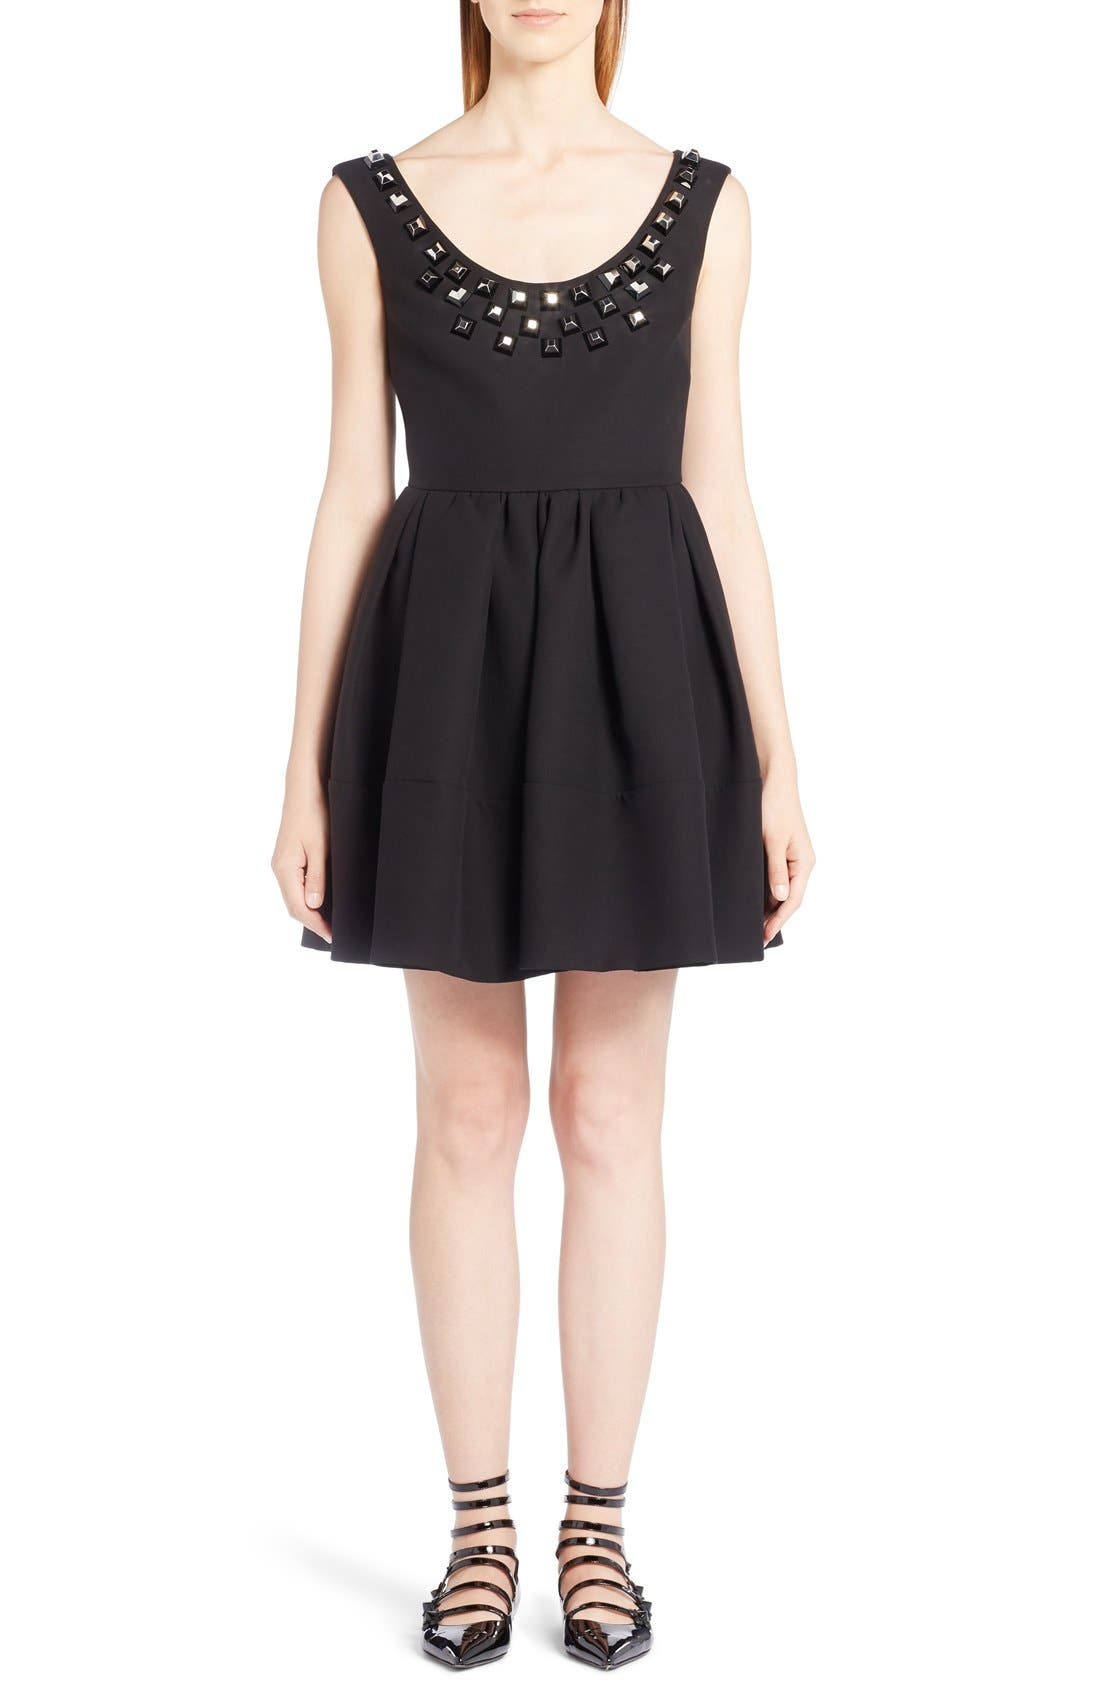 FENDI Studded Fit & Flare Dress